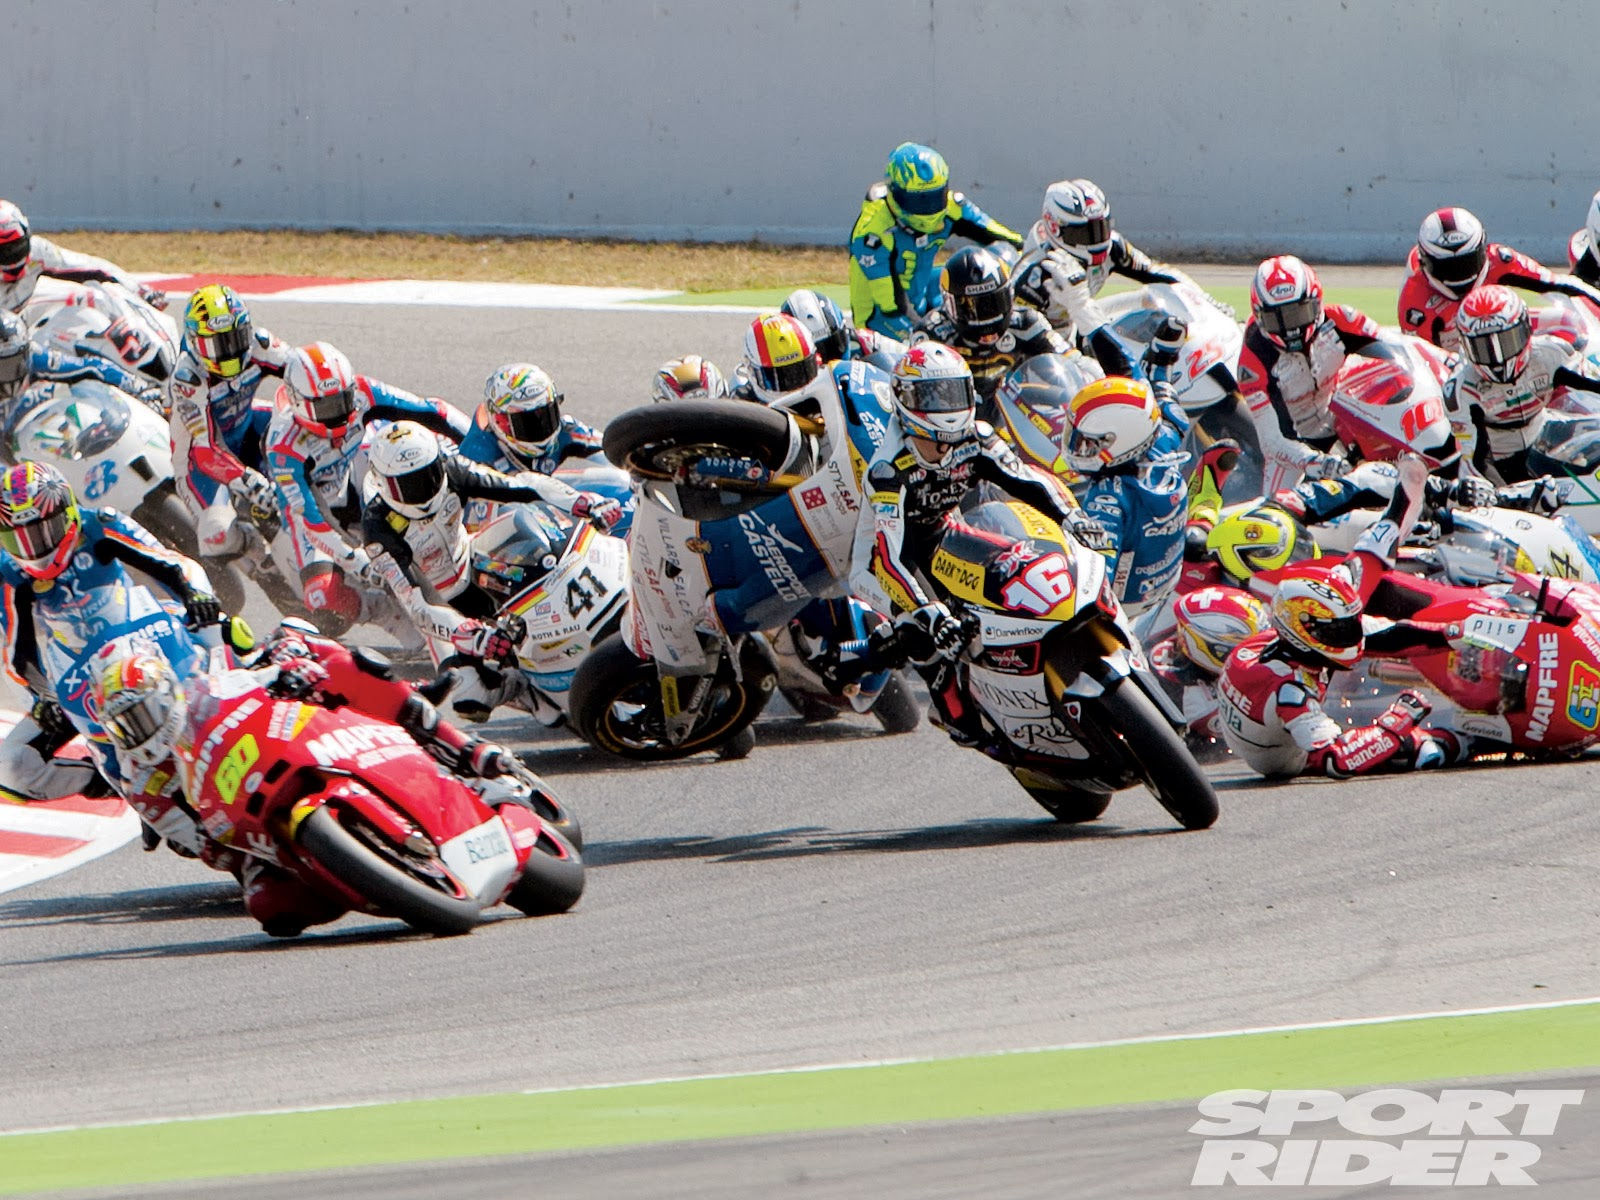 MOTOGP: MOTOGP BIGGEST CRASH